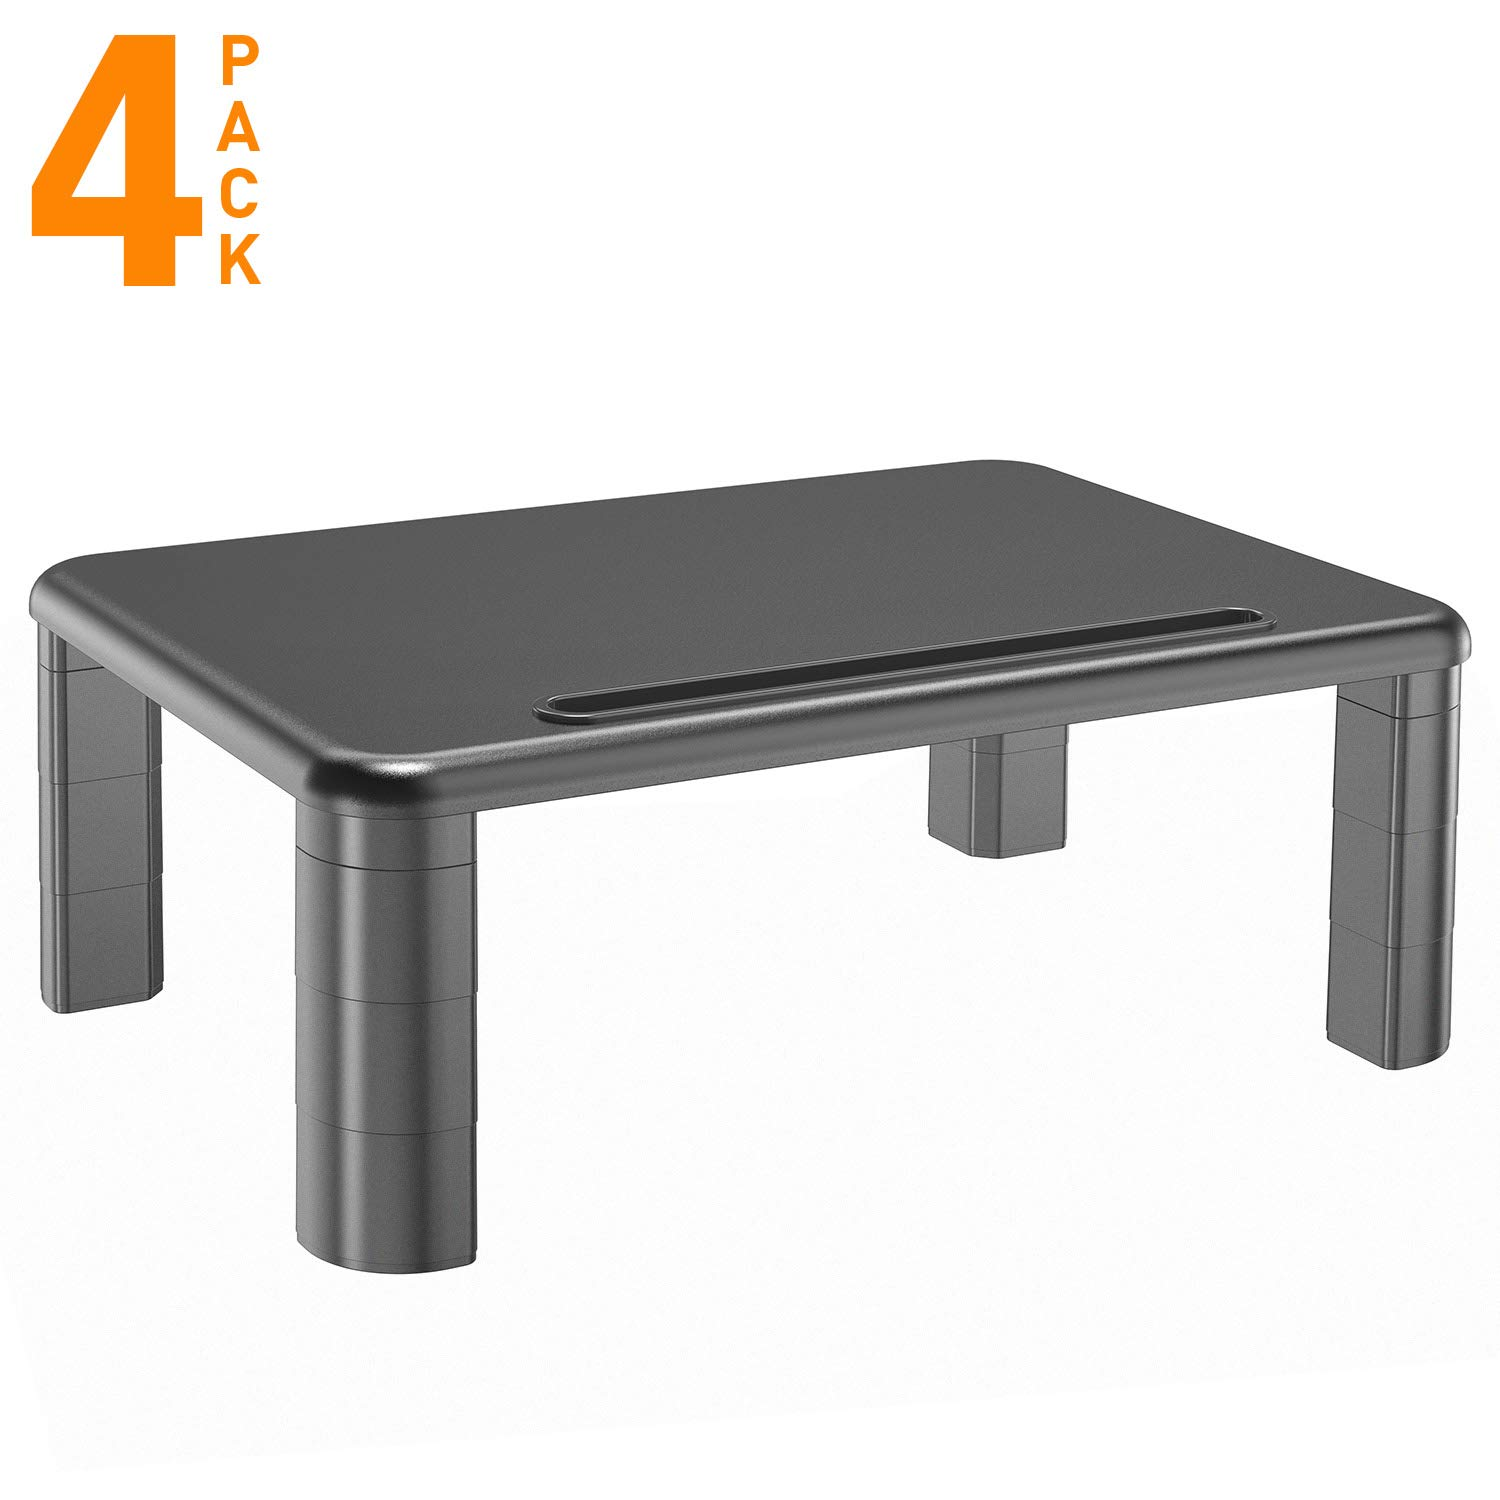 Monitor Stand Riser with Vented Metal for Computer, Laptop, Desk, iMac, Printer with 14.5 Platform 4 inch Height (4 pack, Black)